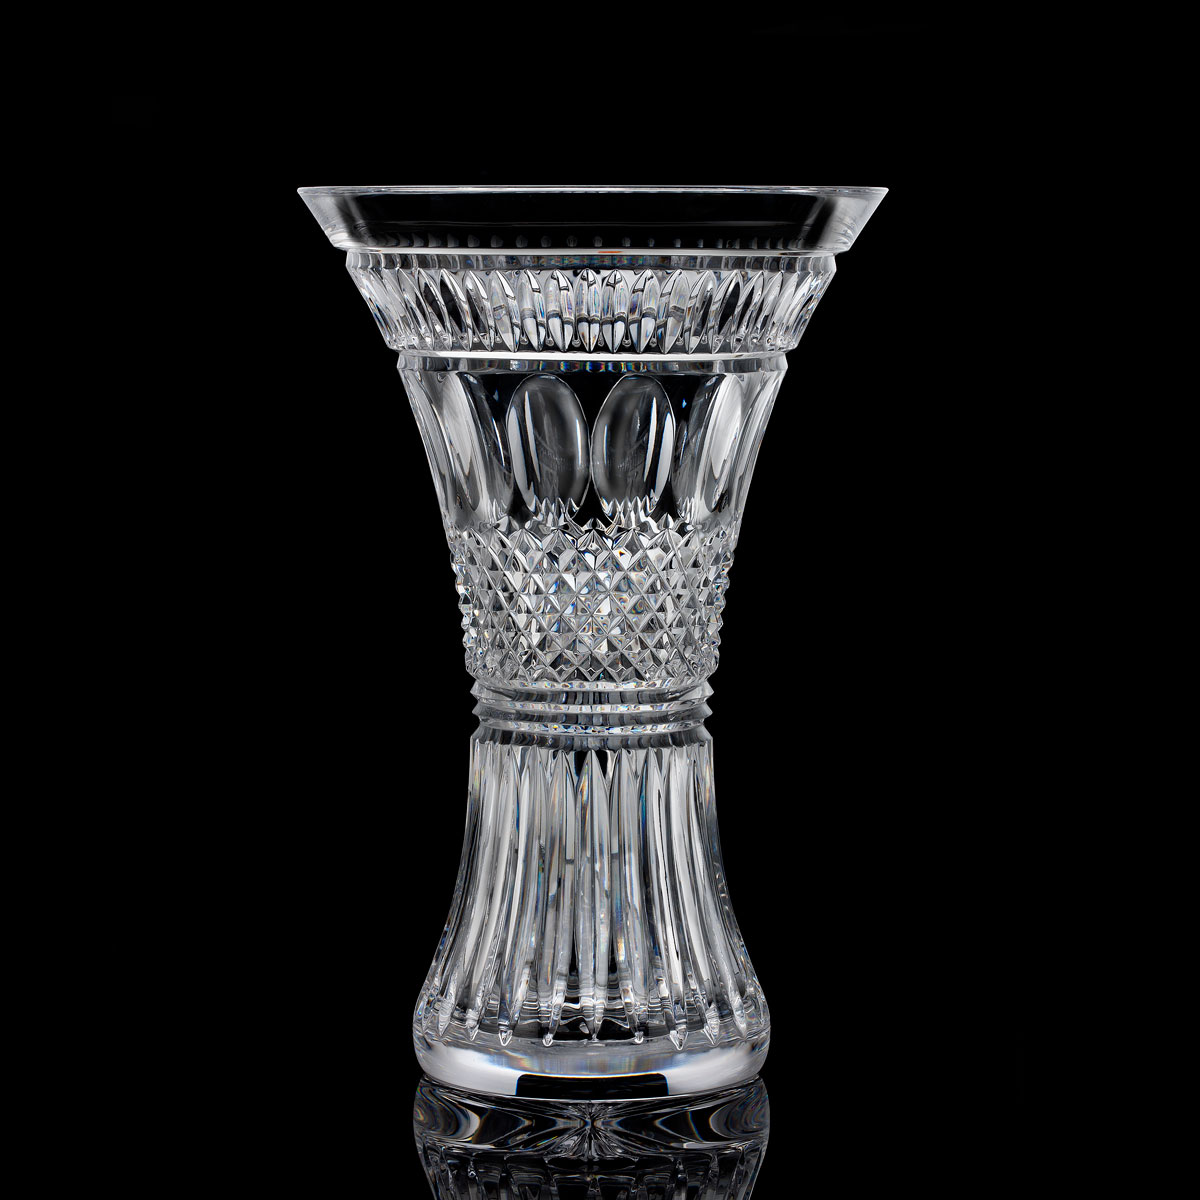 Waterford Crystal, House of Waterford Trilogy Colleen Crystal Vase